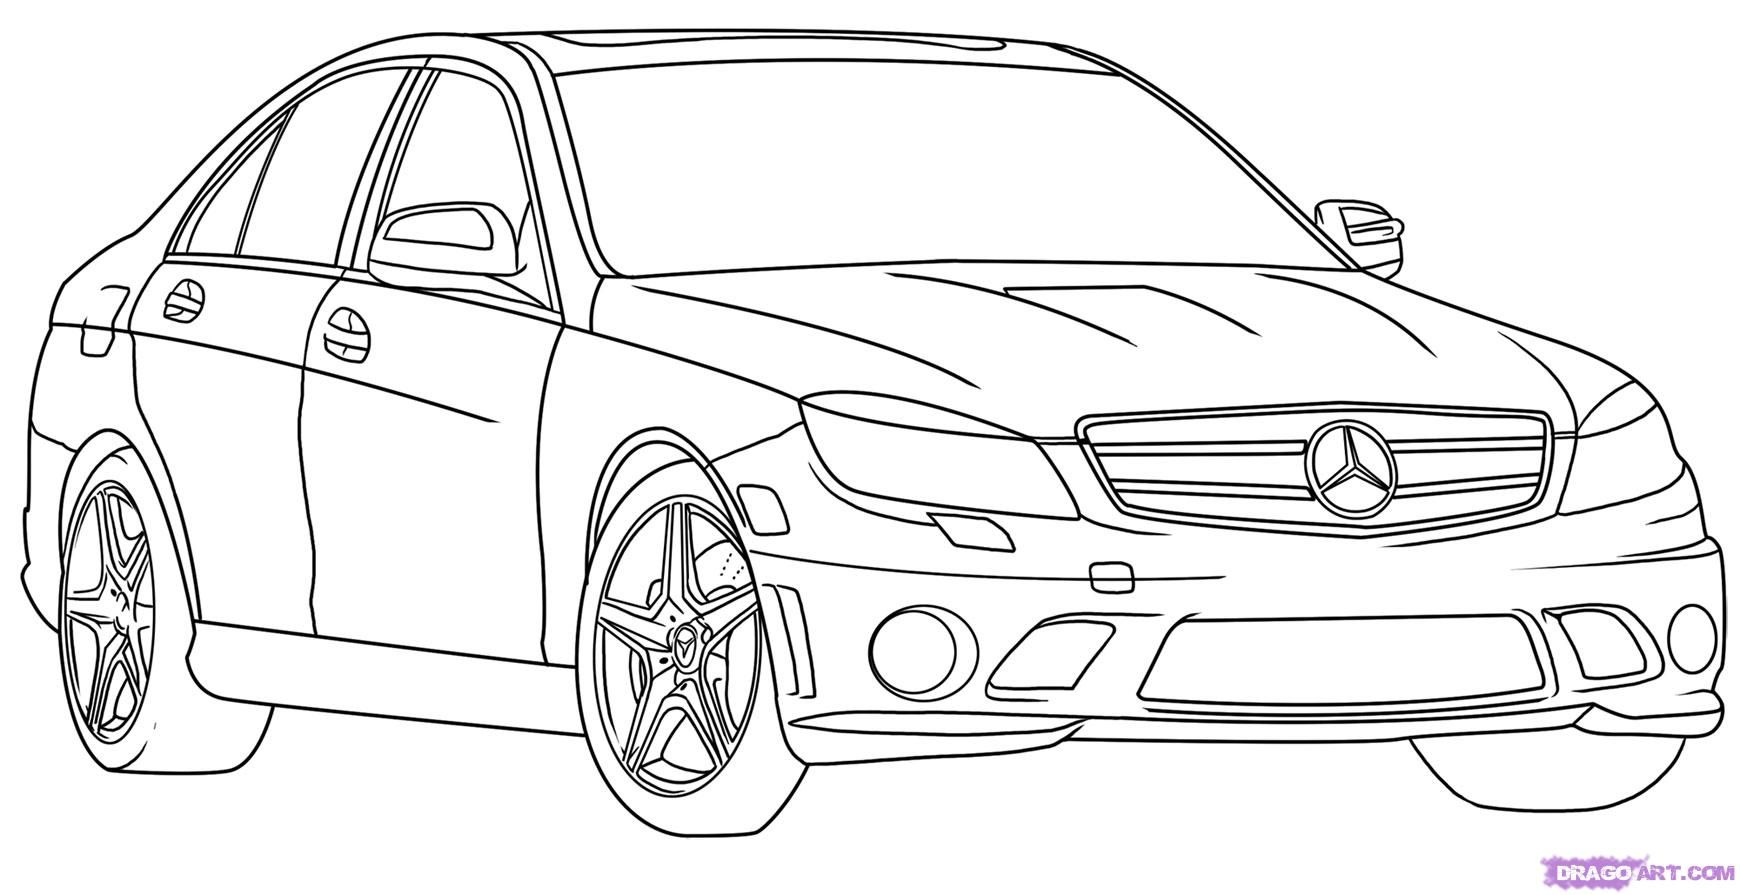 Comme dessiner l'automobile Mercedes-Benz progressivement